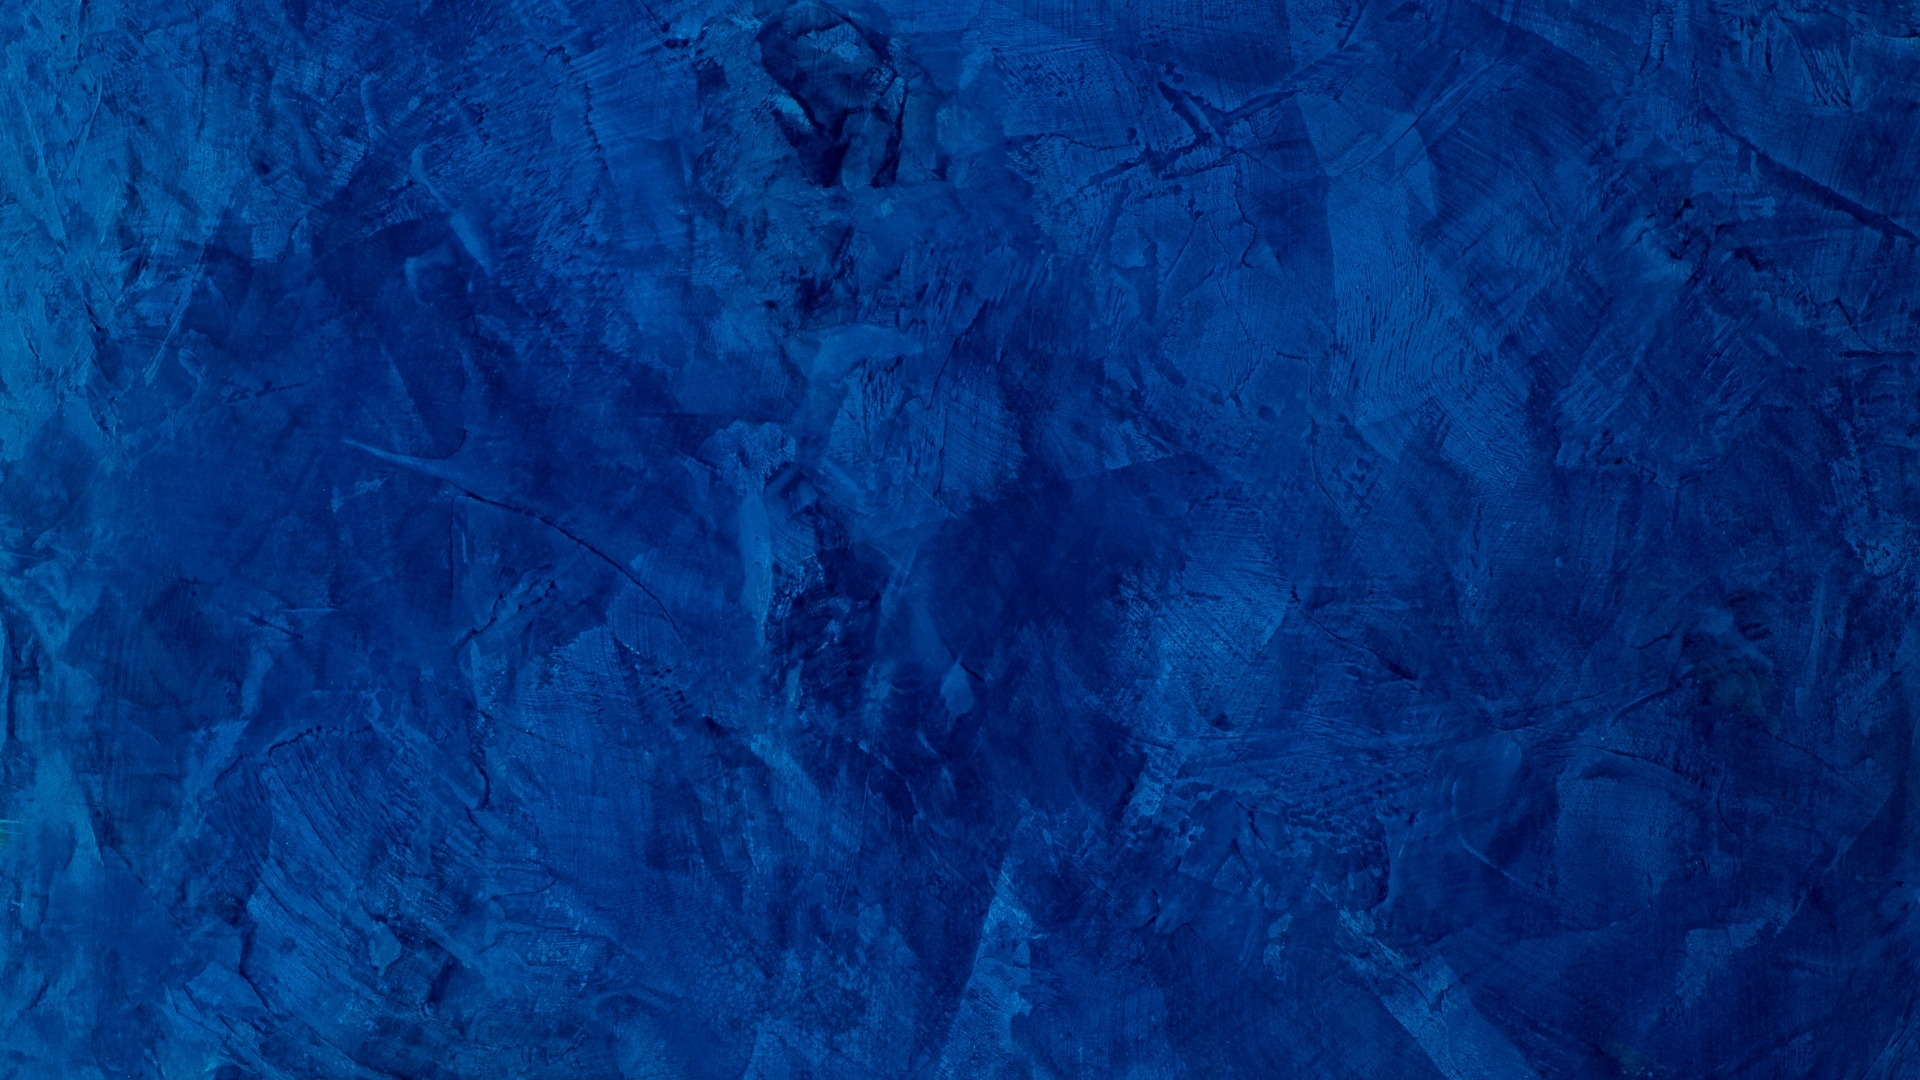 Blue marble background